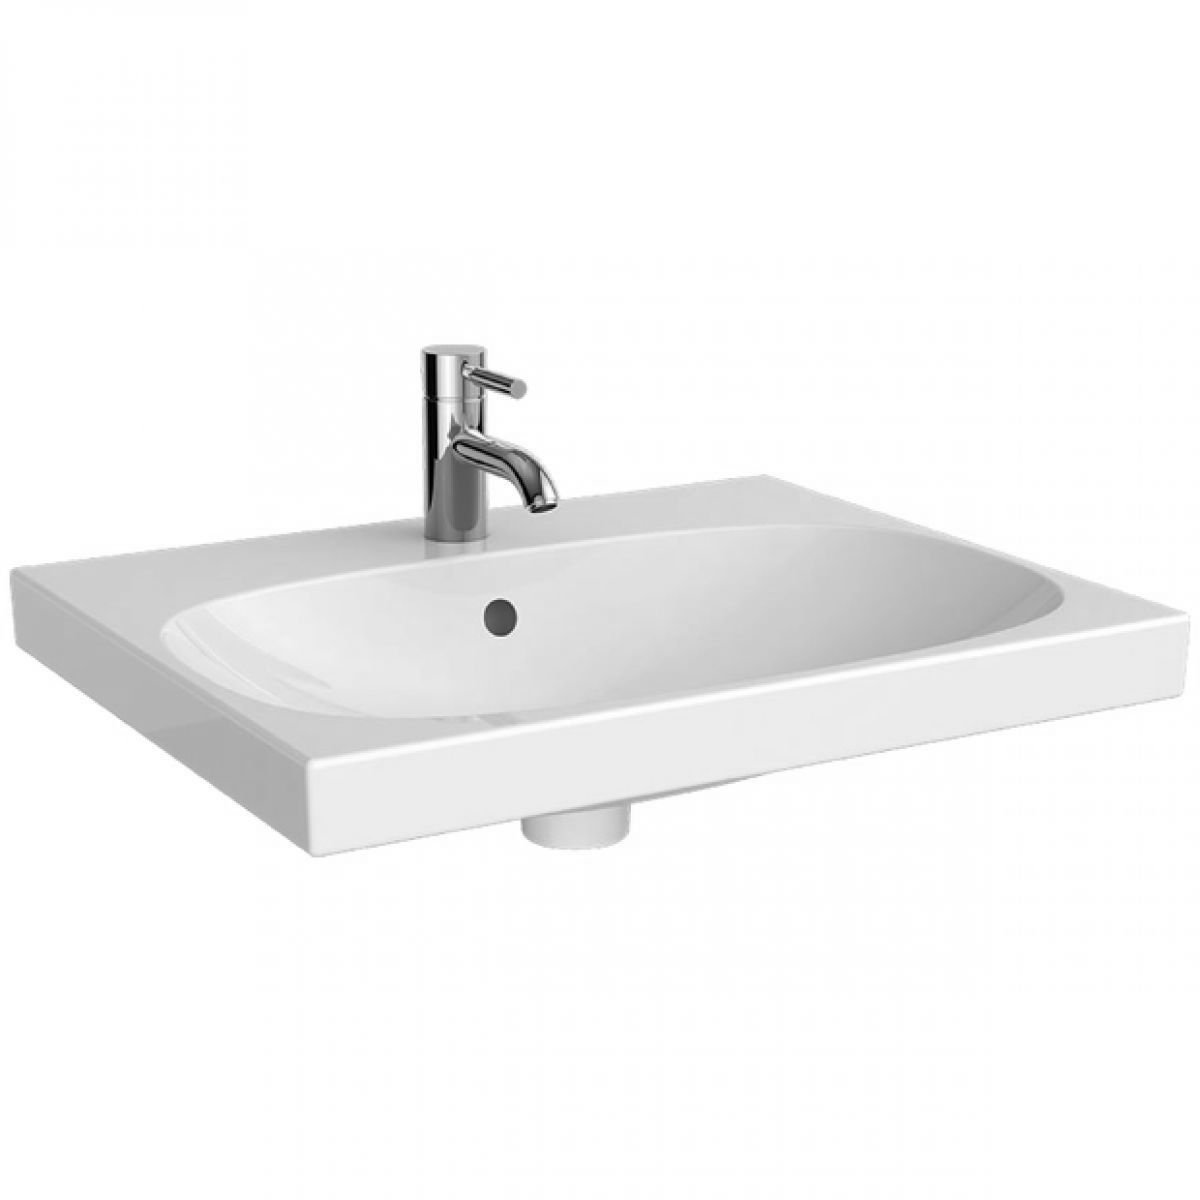 Geberit Acanto Washbasin